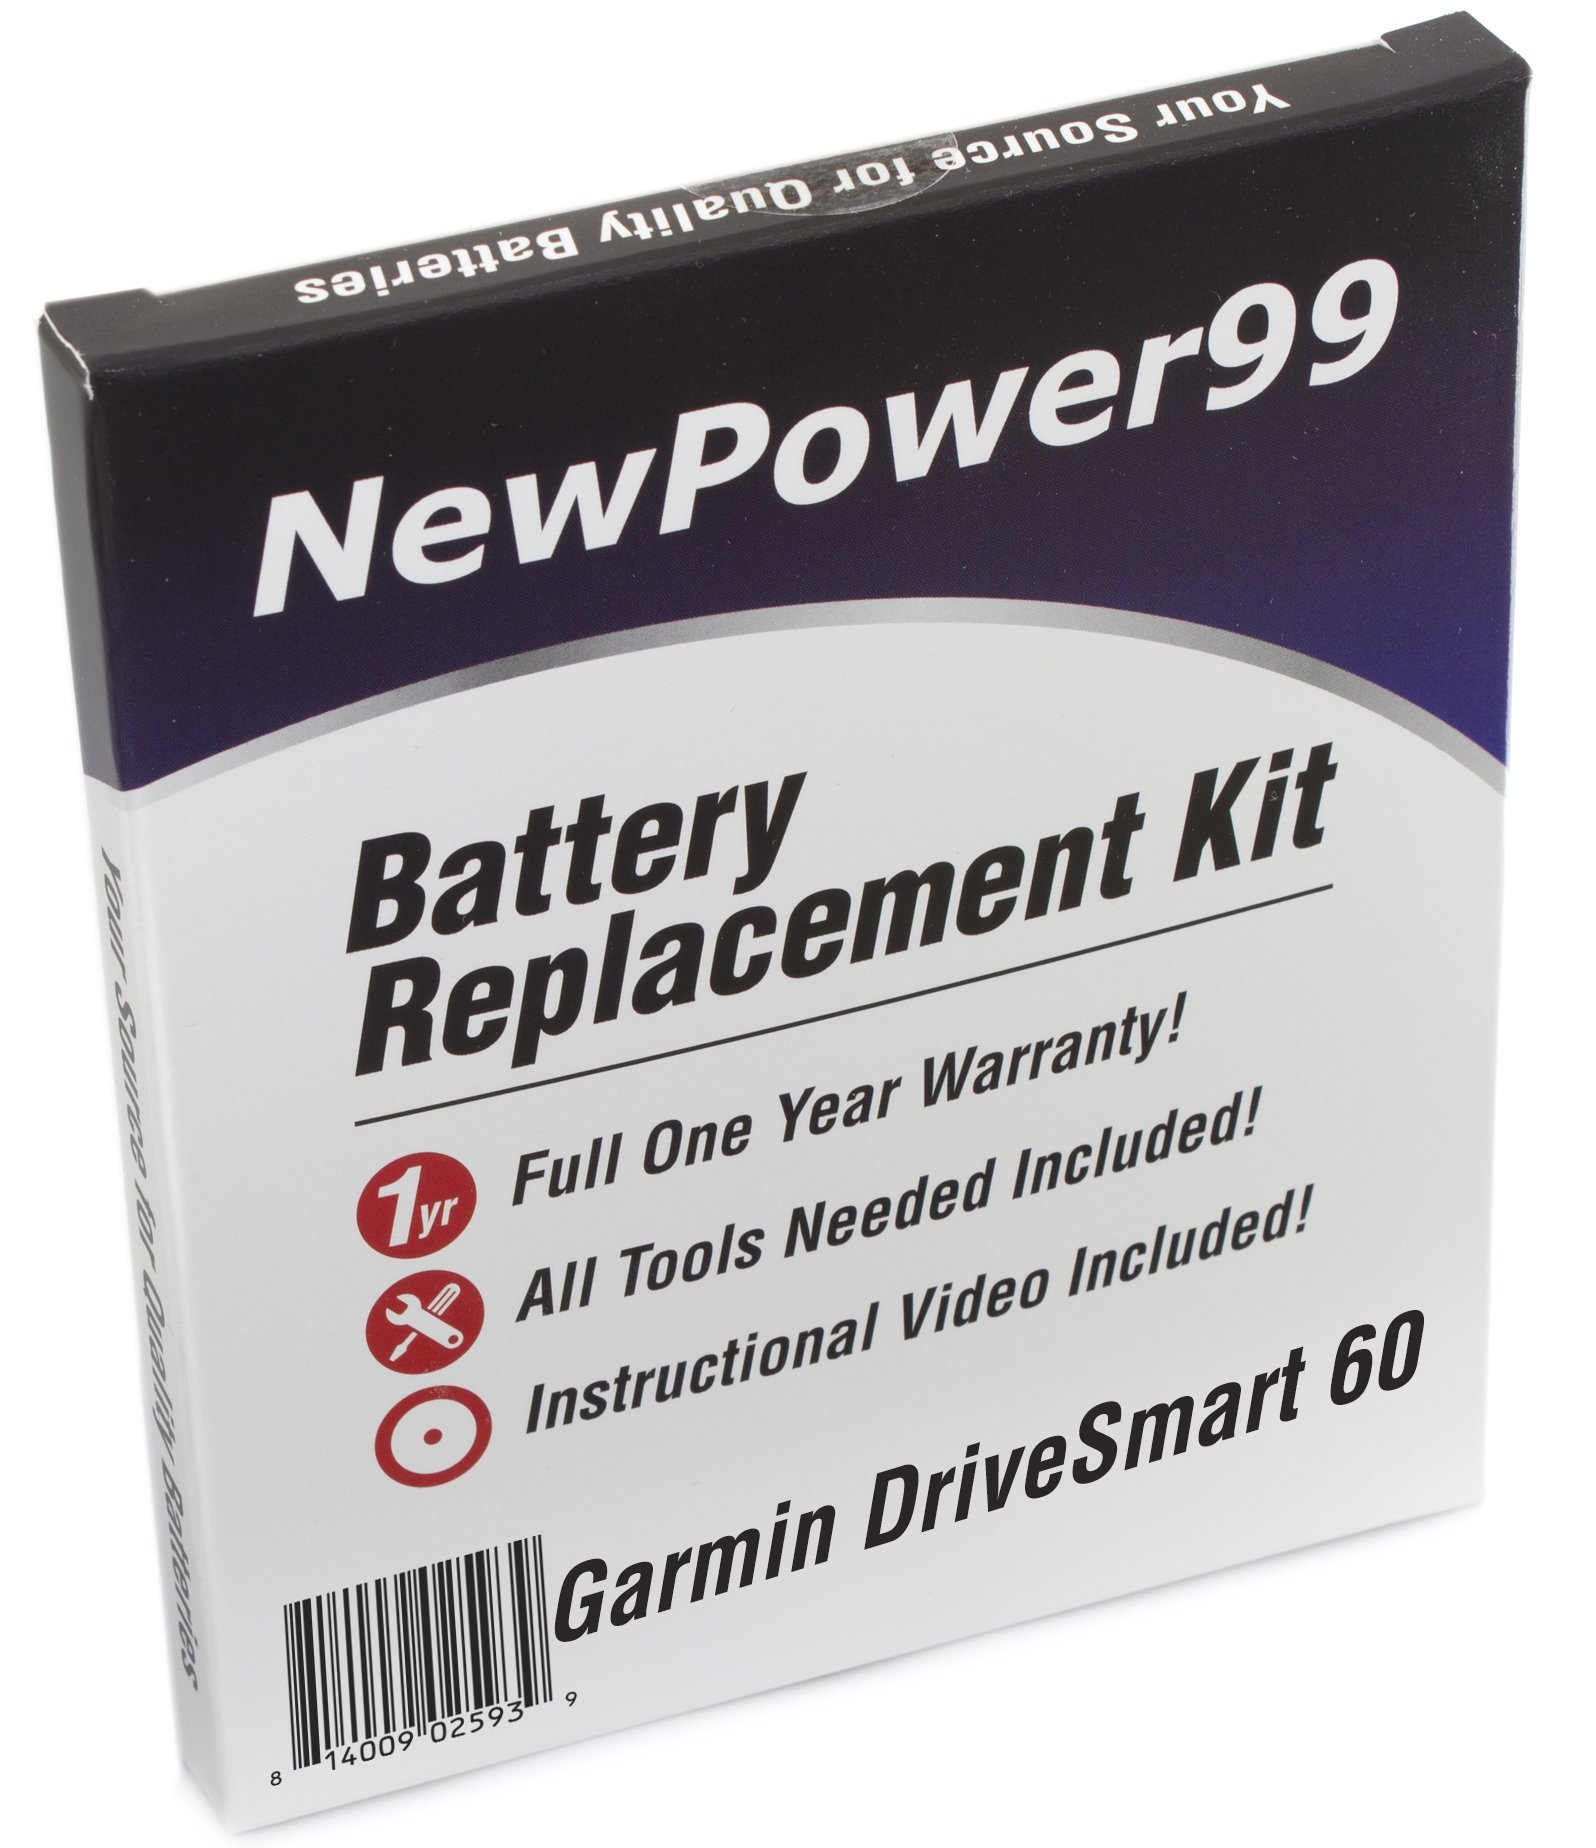 Battery Replacement Kit for Garmin DriveSmart 60 with Installation Video, Tools, and Extended Life Battery. by NewPower99 (Image #1)